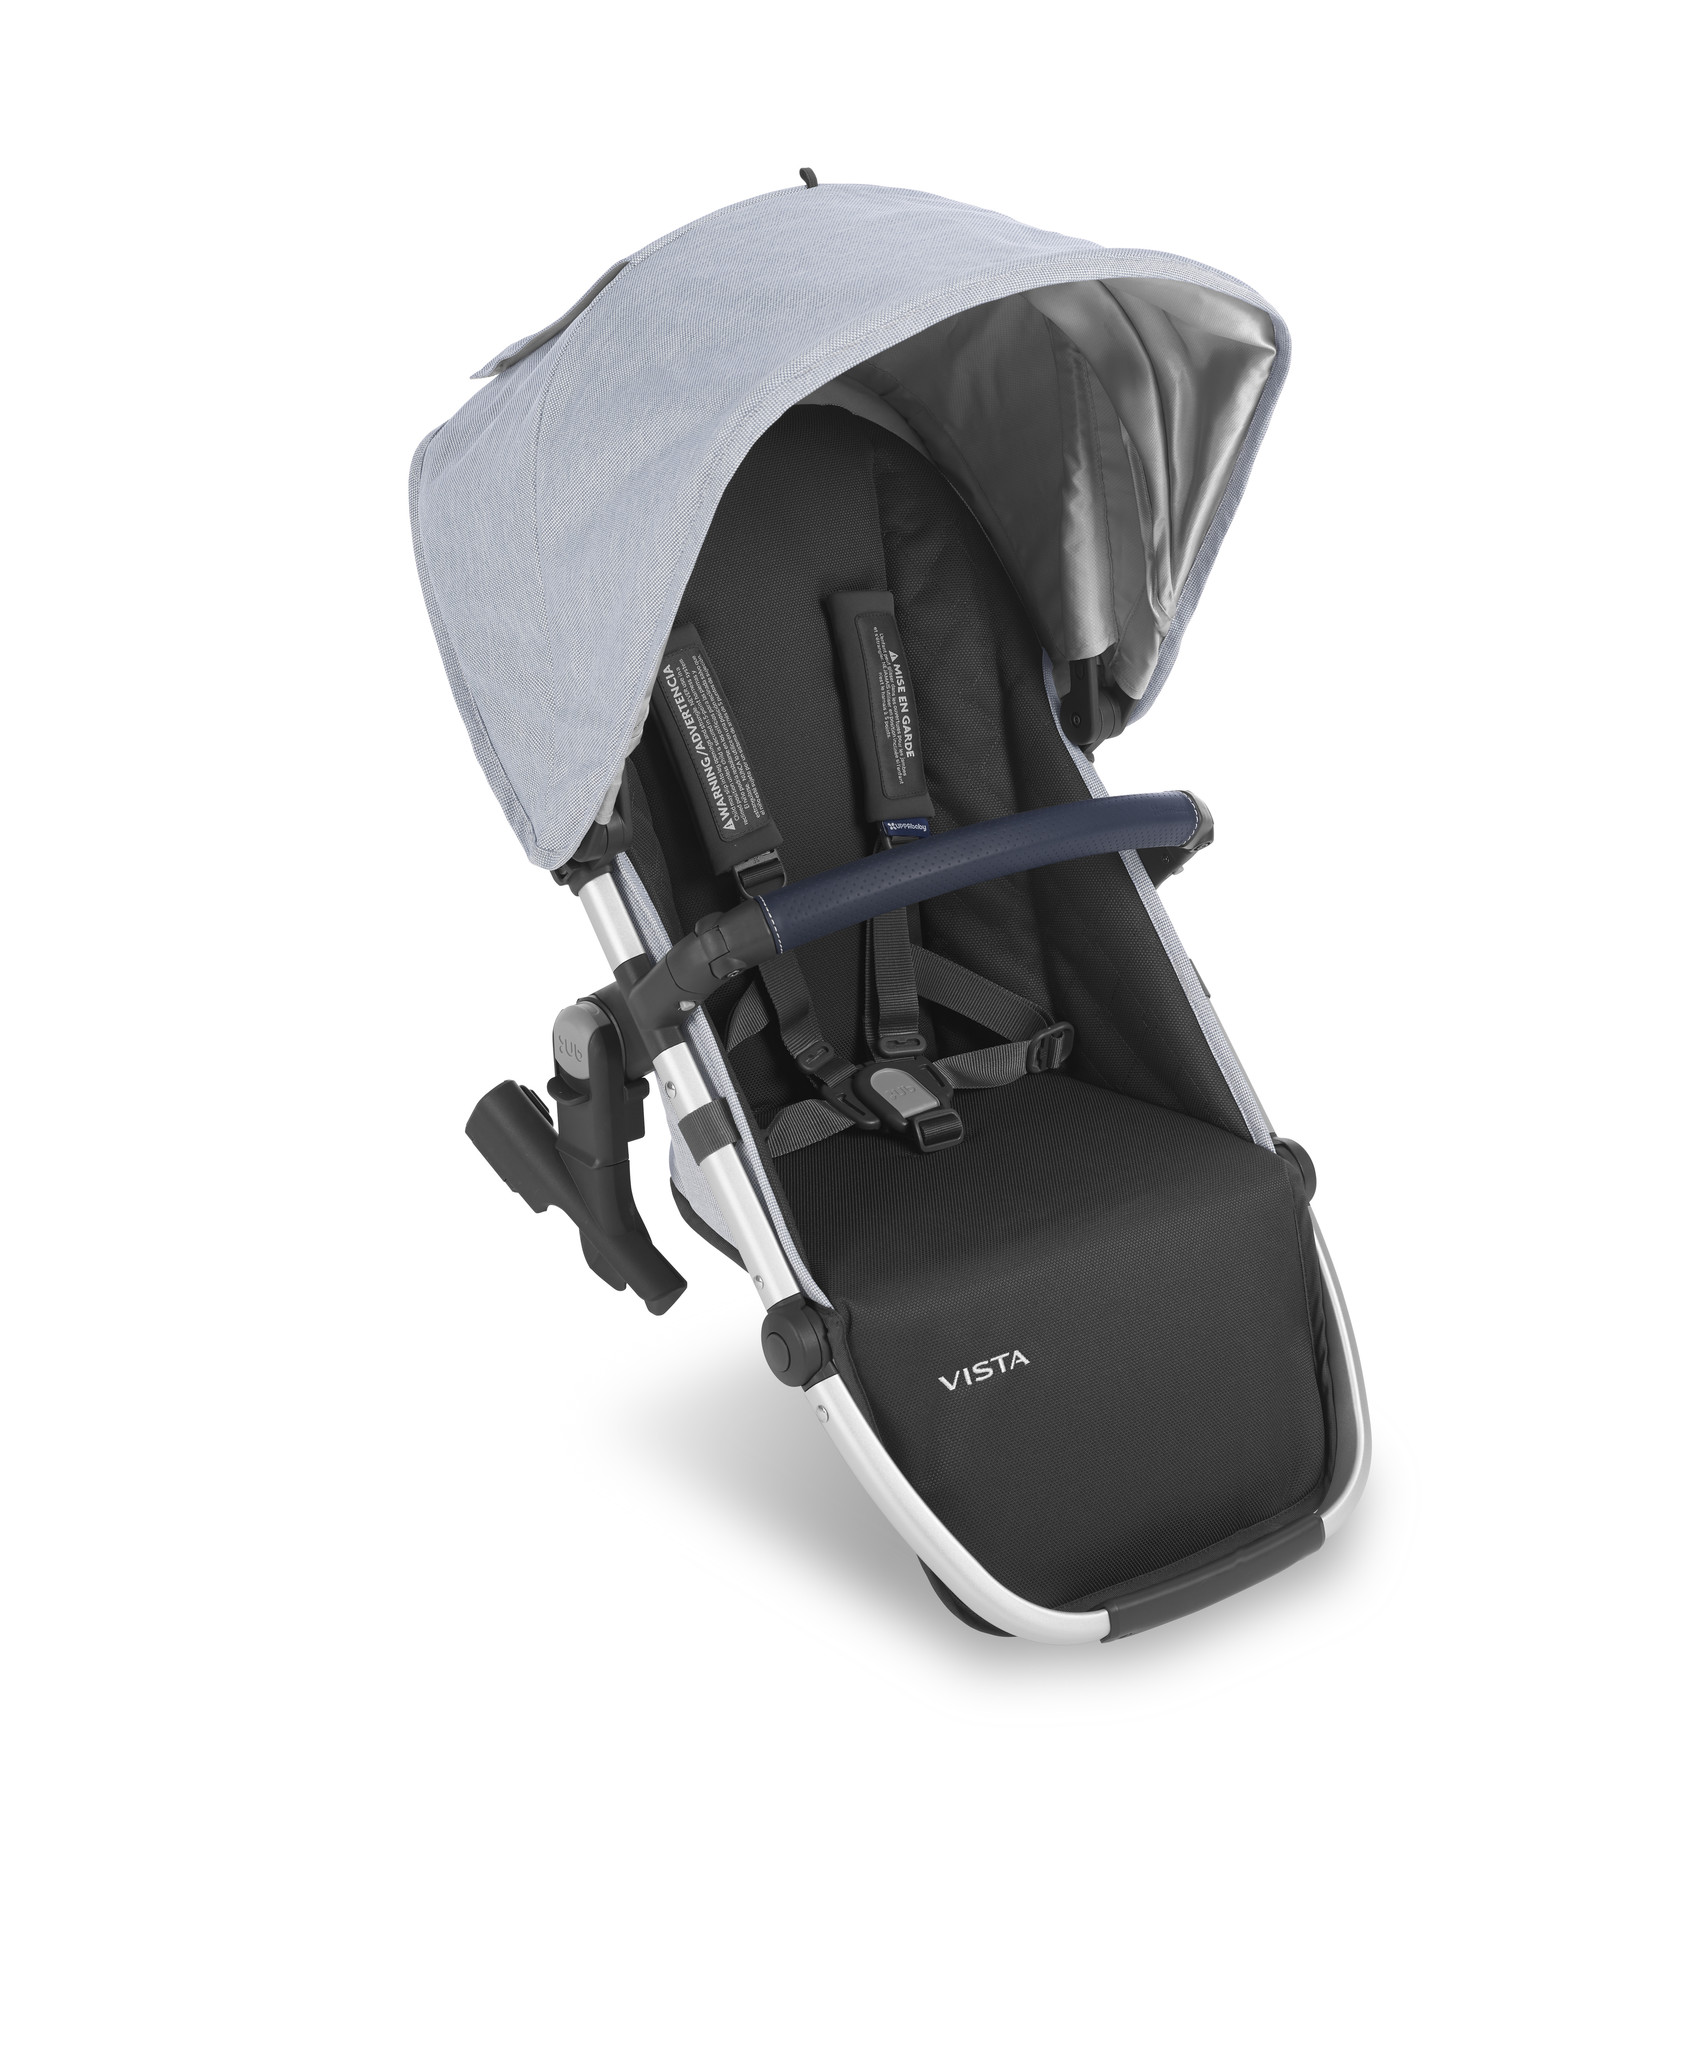 UPPAbaby UPPAbaby Rumble Seat - William (Chambray)